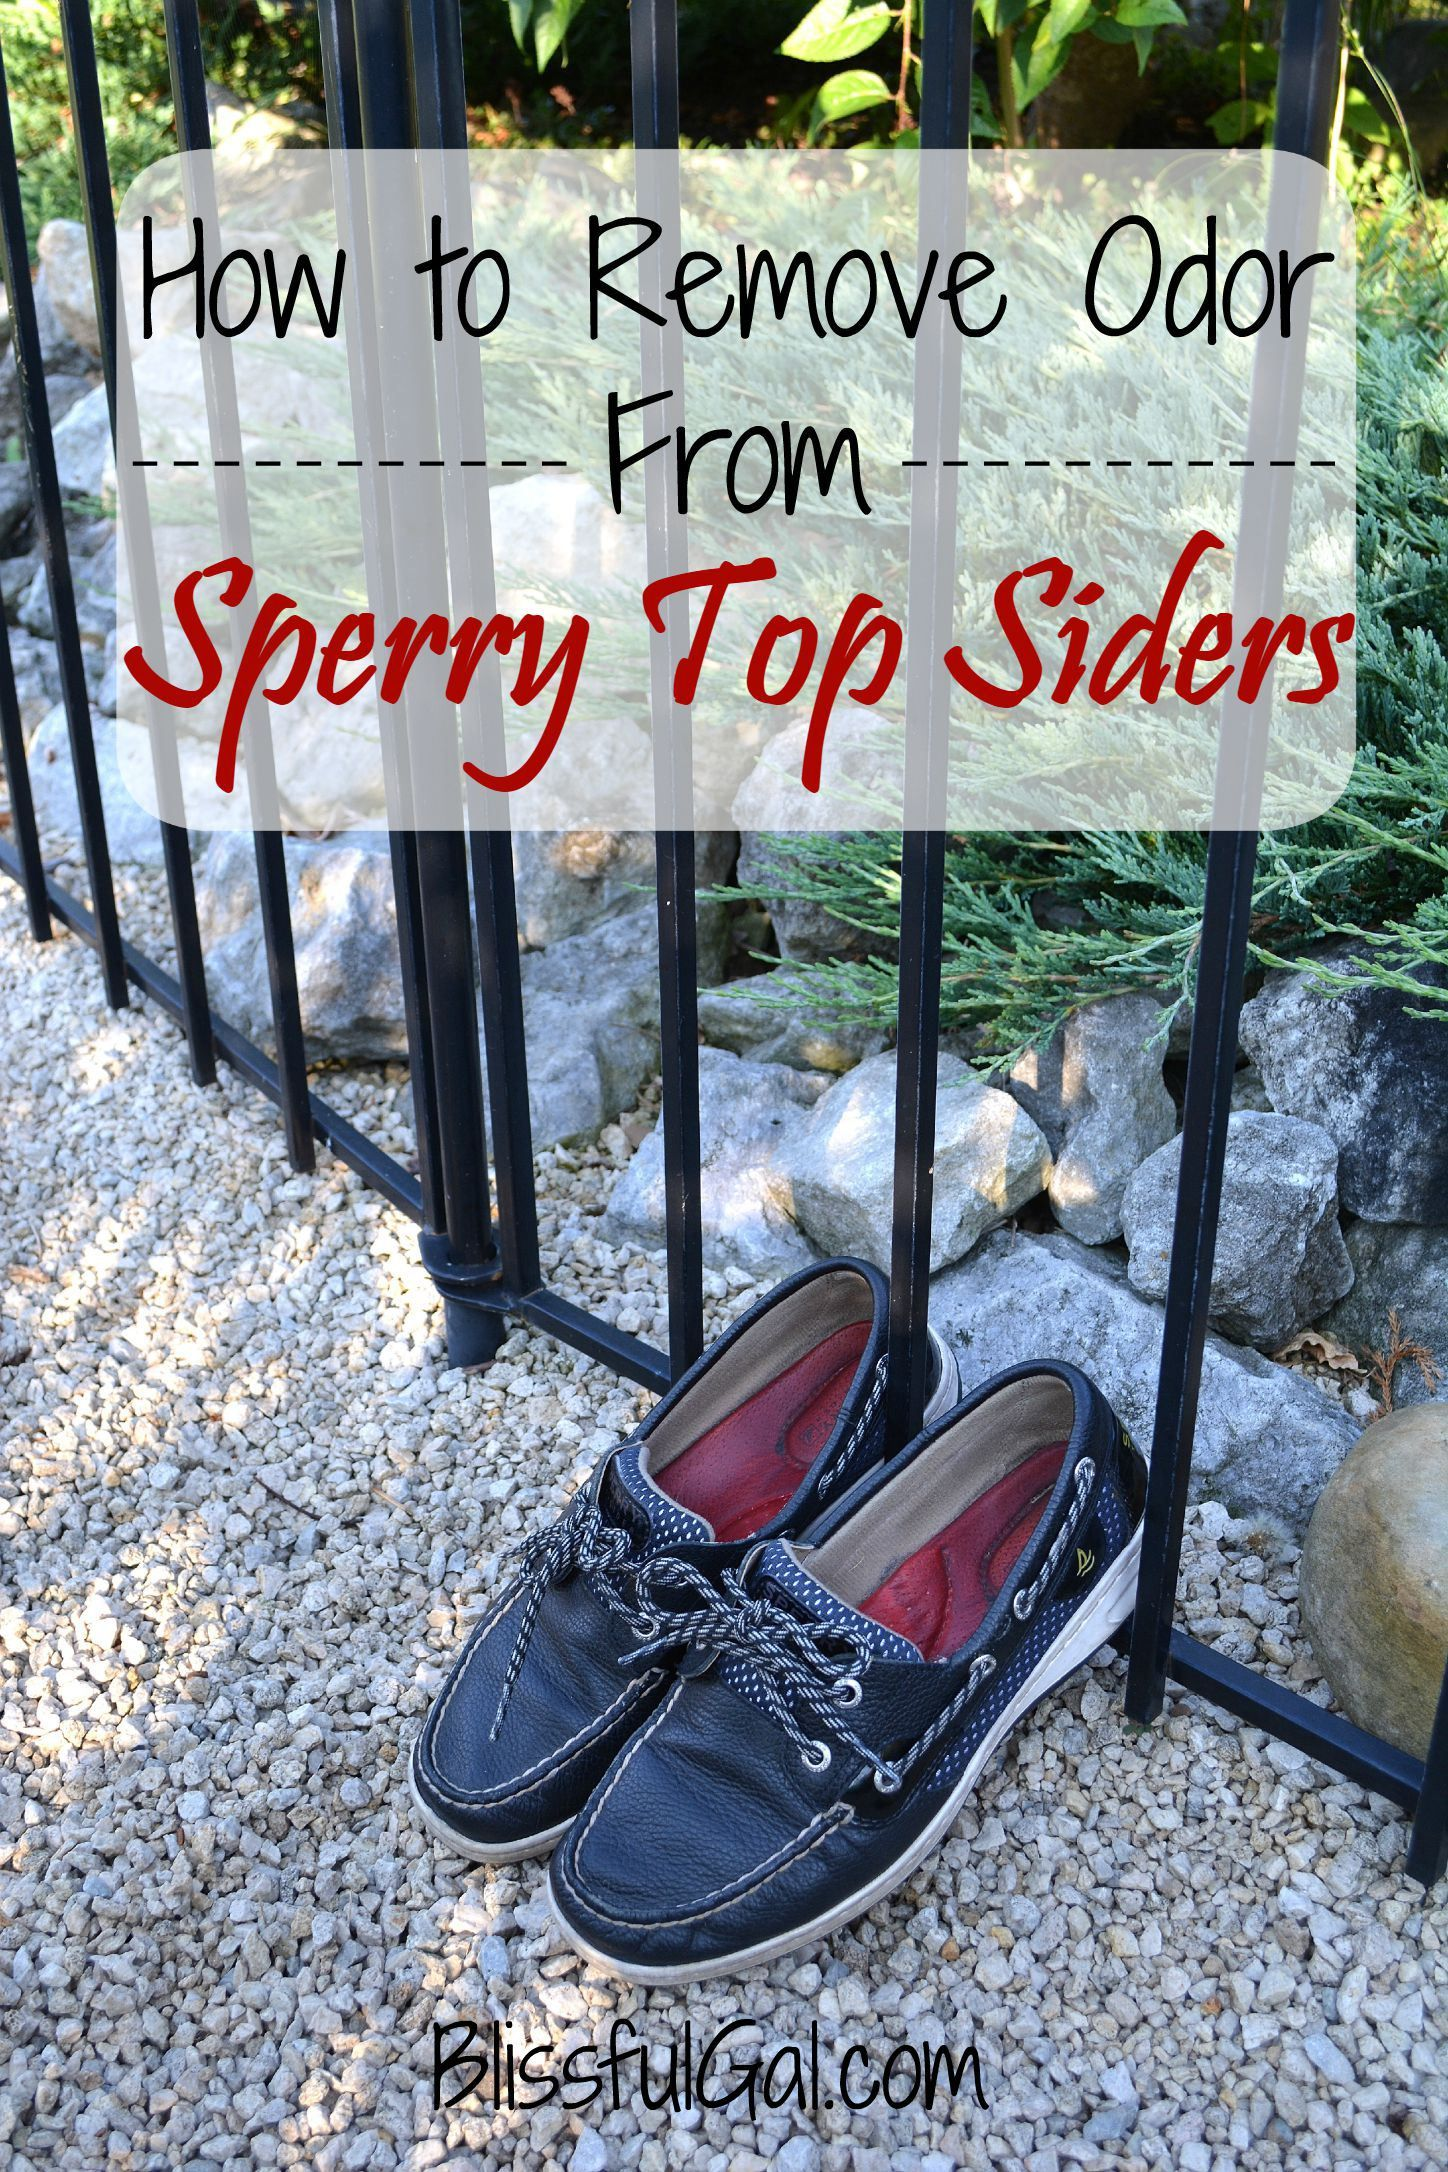 5 ways to remove odor from sperry top siders sperrys